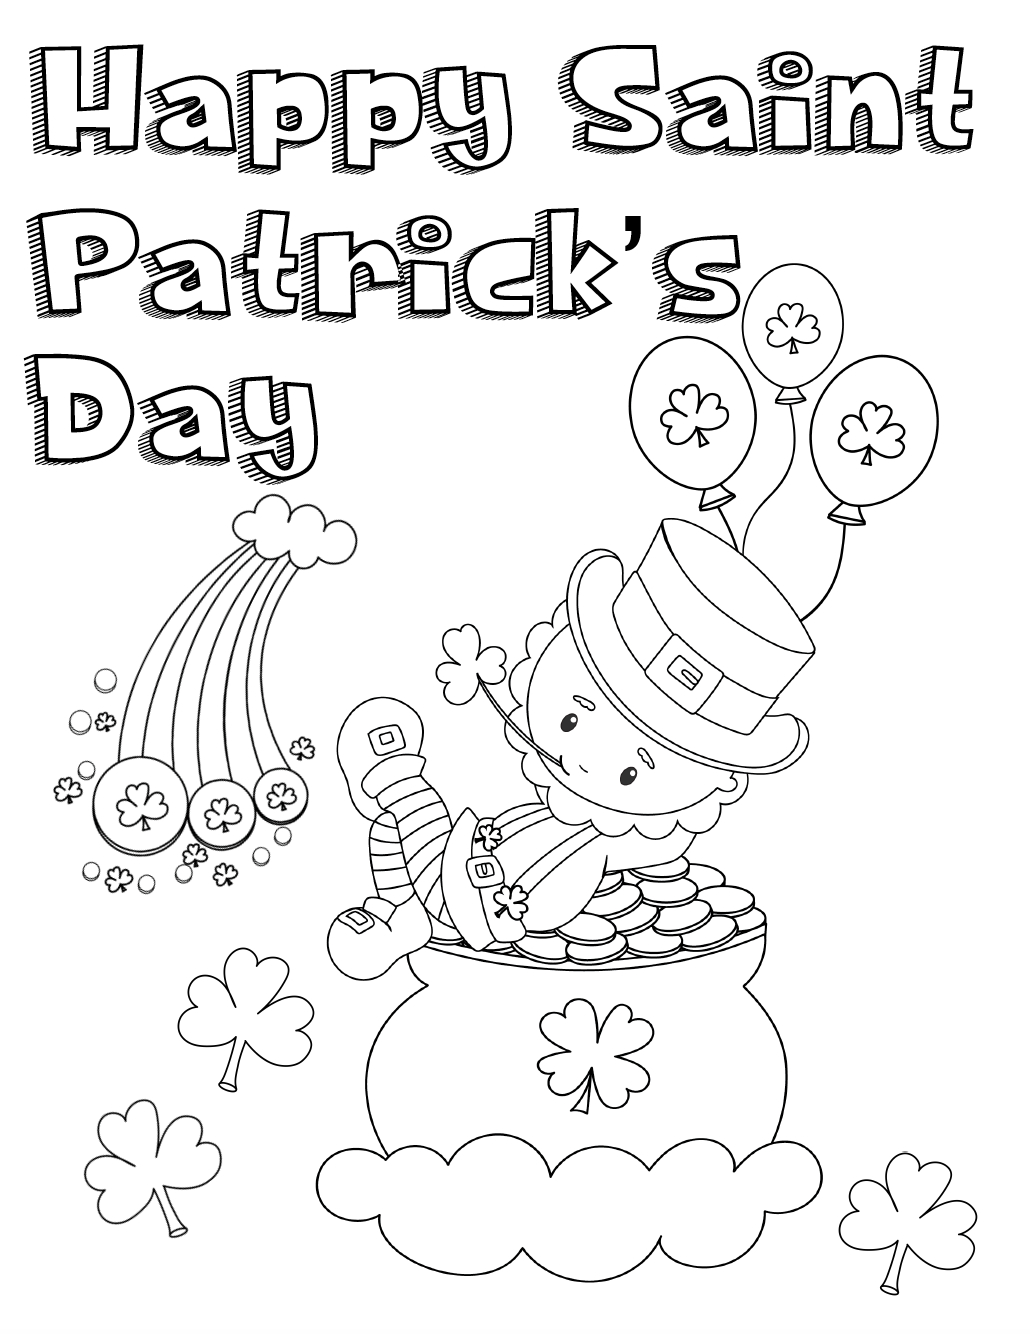 Free Printable St. Patrick's Day Coloring Pages: 4 Designs! - Free Printable St Patrick Day Coloring Pages